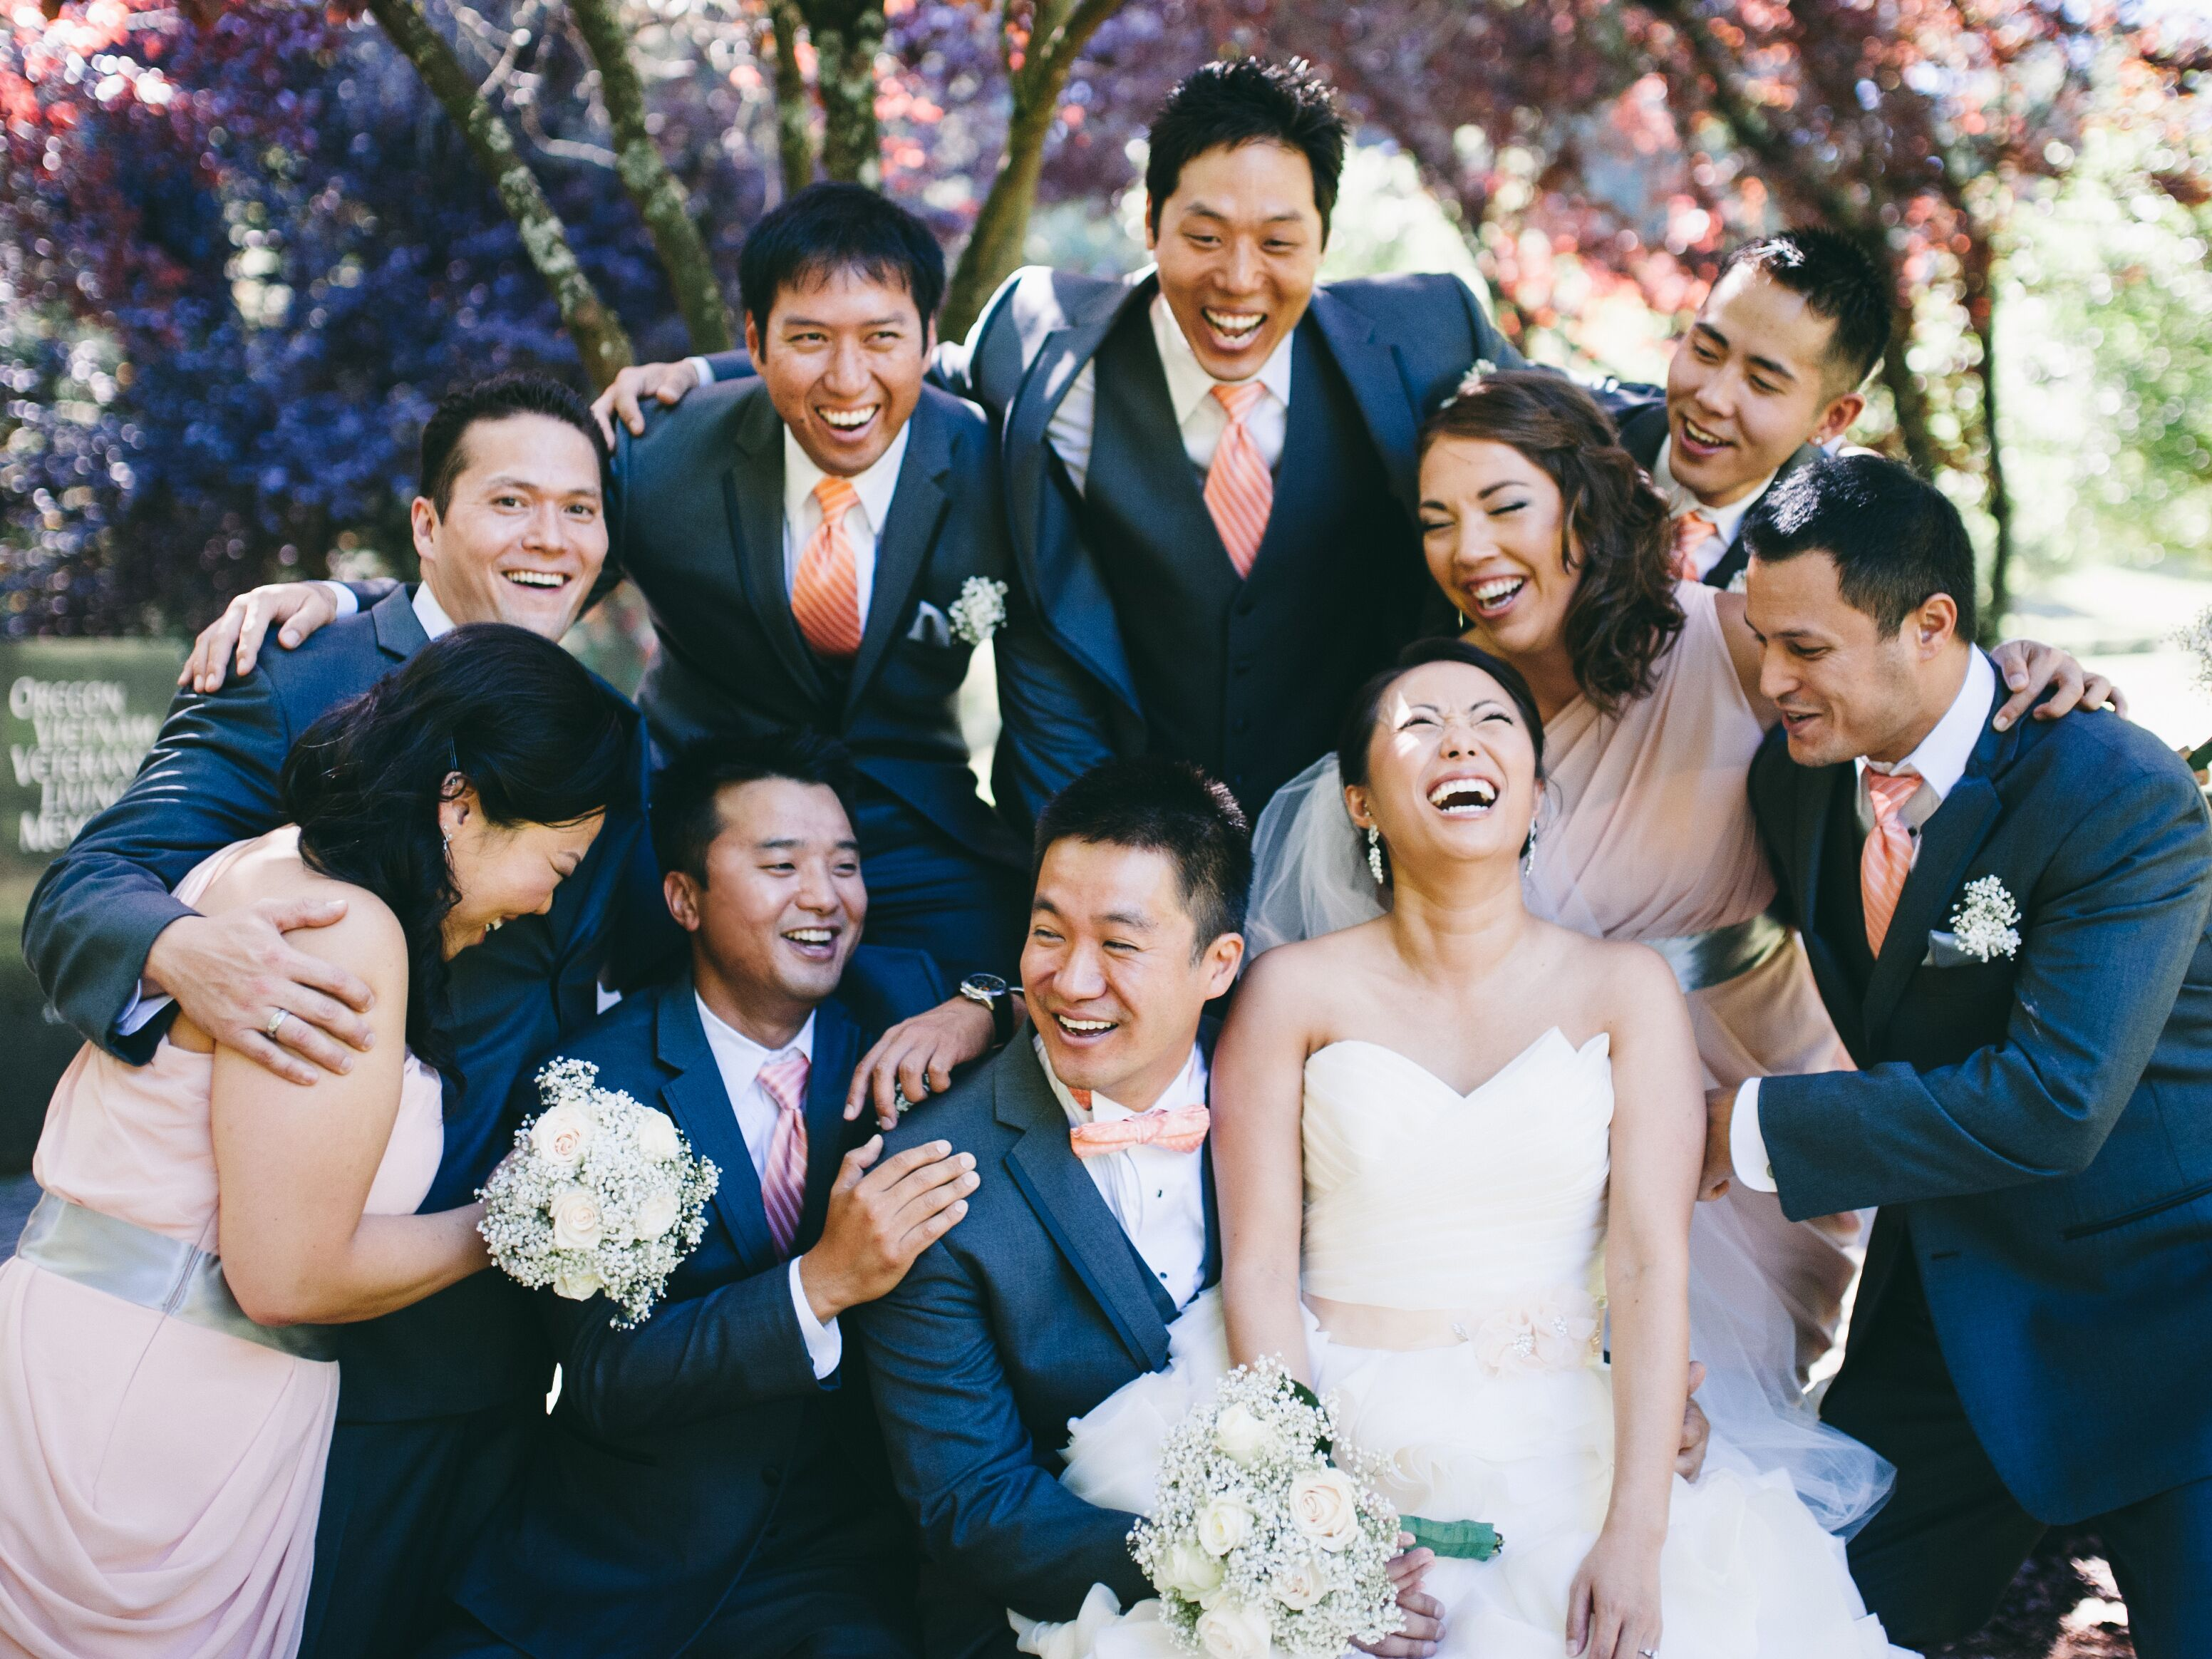 Is A Mismatched Number Of Bridesmaids And Groomsmen Okay?. Lds Wedding Dresses Online. Informal Beach Wedding Dresses Uk. Disney Cinderella Wedding Dress Costume. Wedding Dresses Lace With Beading. Wedding Dresses Country Style. Tea Length Wedding Dresses In Color. Champagne Wedding Dress Designers. Designer Wedding Dresses Gents